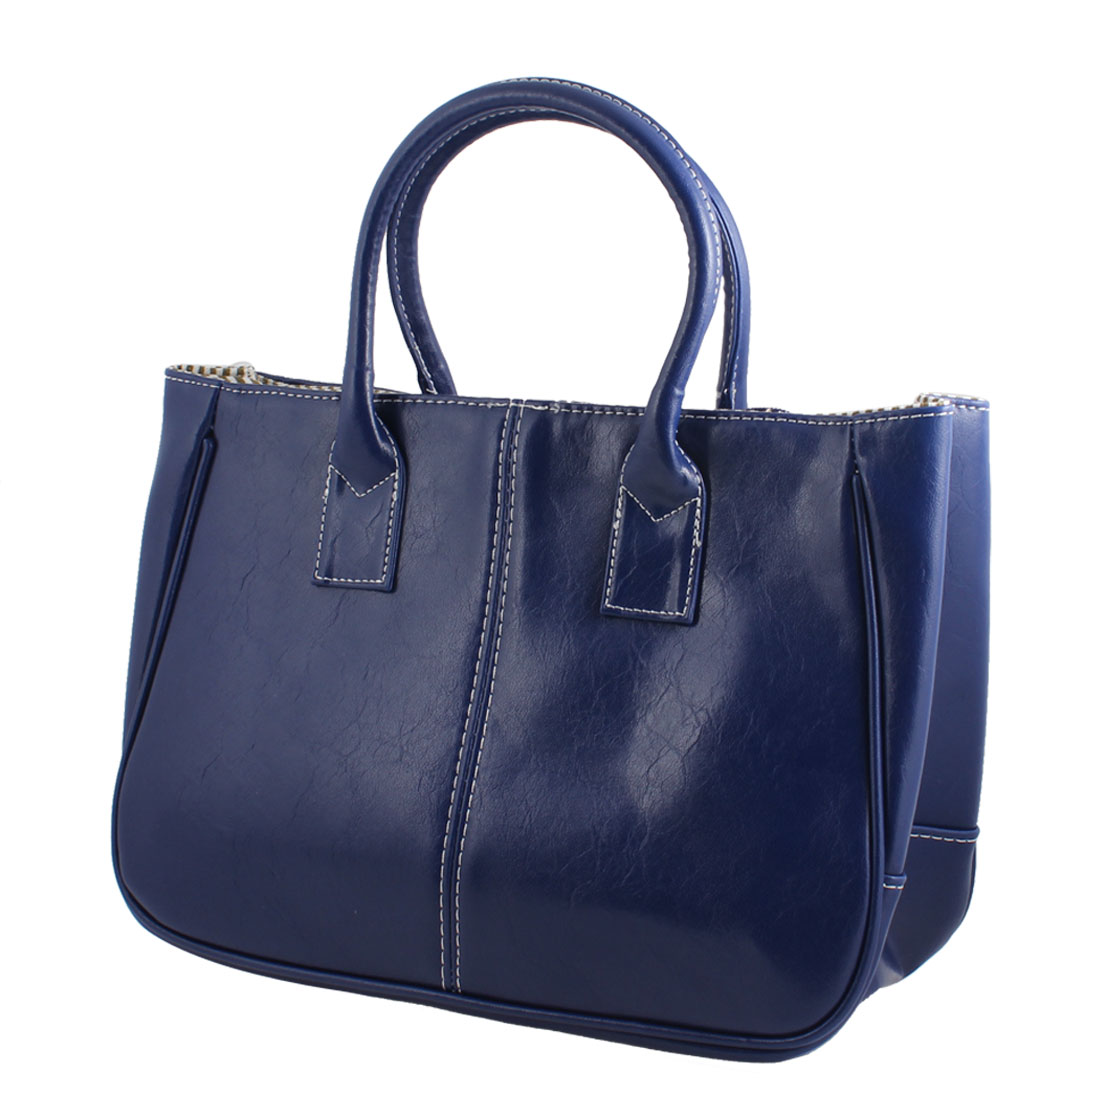 Faux Leather Magnetic Button Closure Tote Bag Handbag Dark Blue for Women